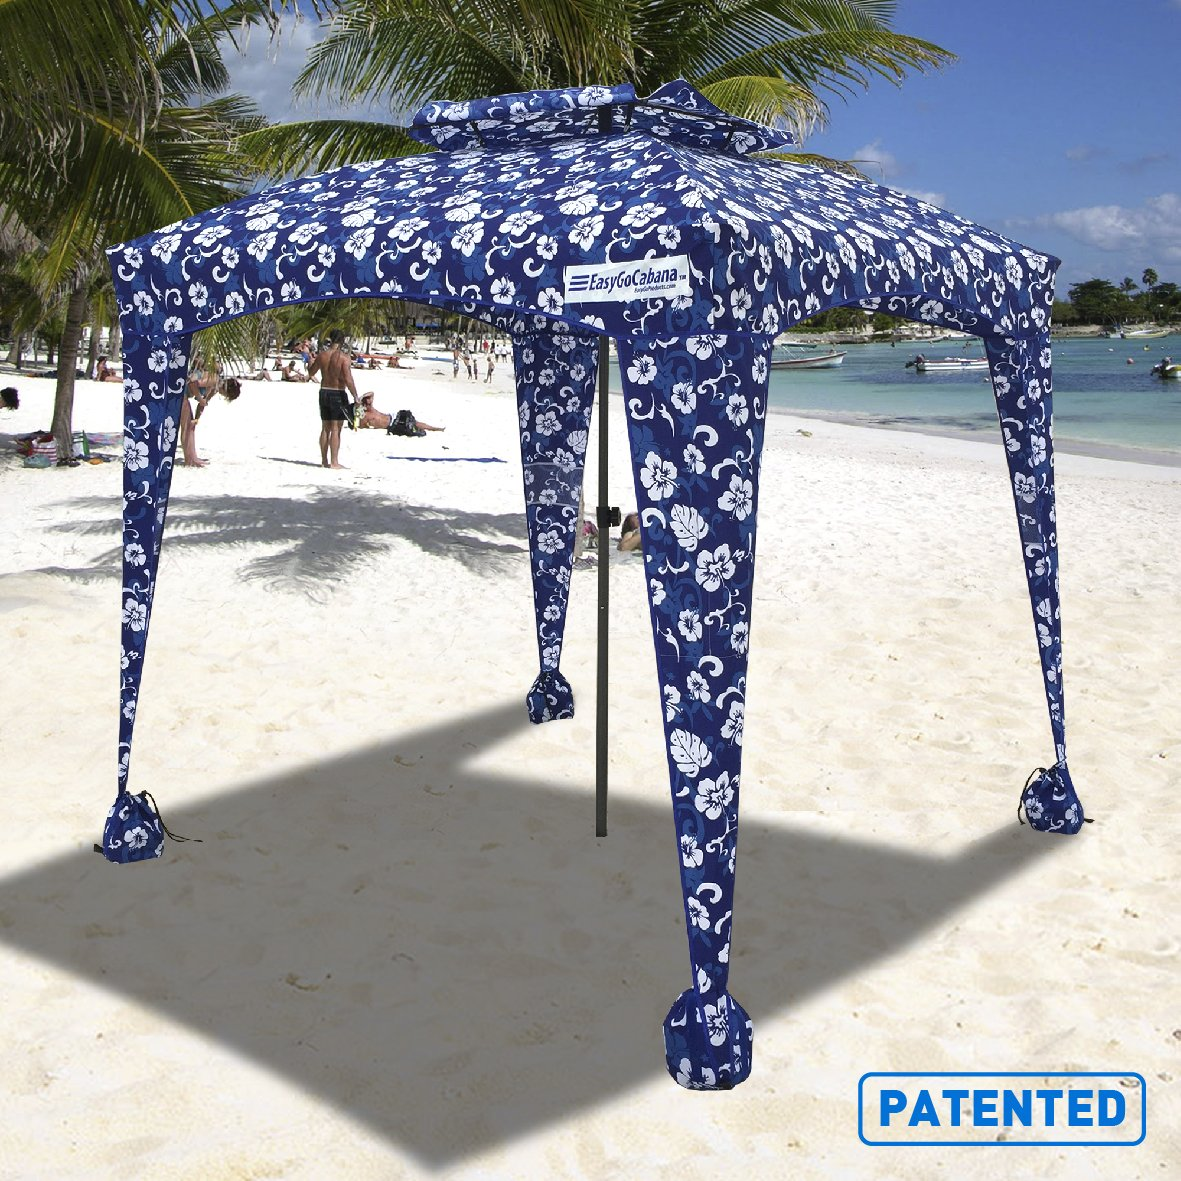 EasyGoProducts Beach Umbrella & Sports Cabana, Blue Flowers, 6' x 6' by EasyGoProducts